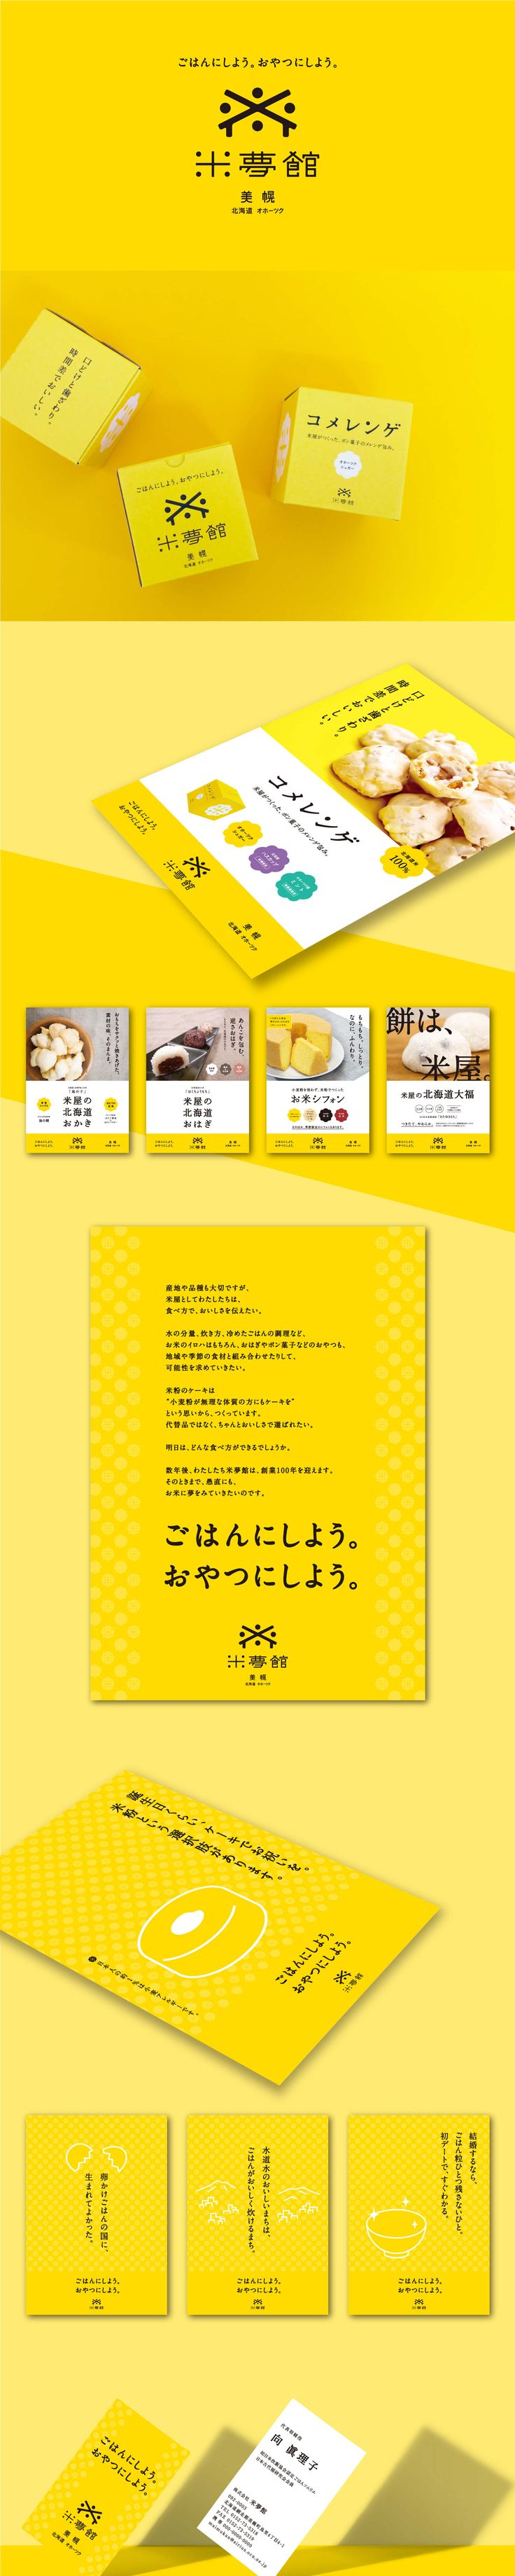 米夢館 - IMPROVIDE Co.,Ltd.